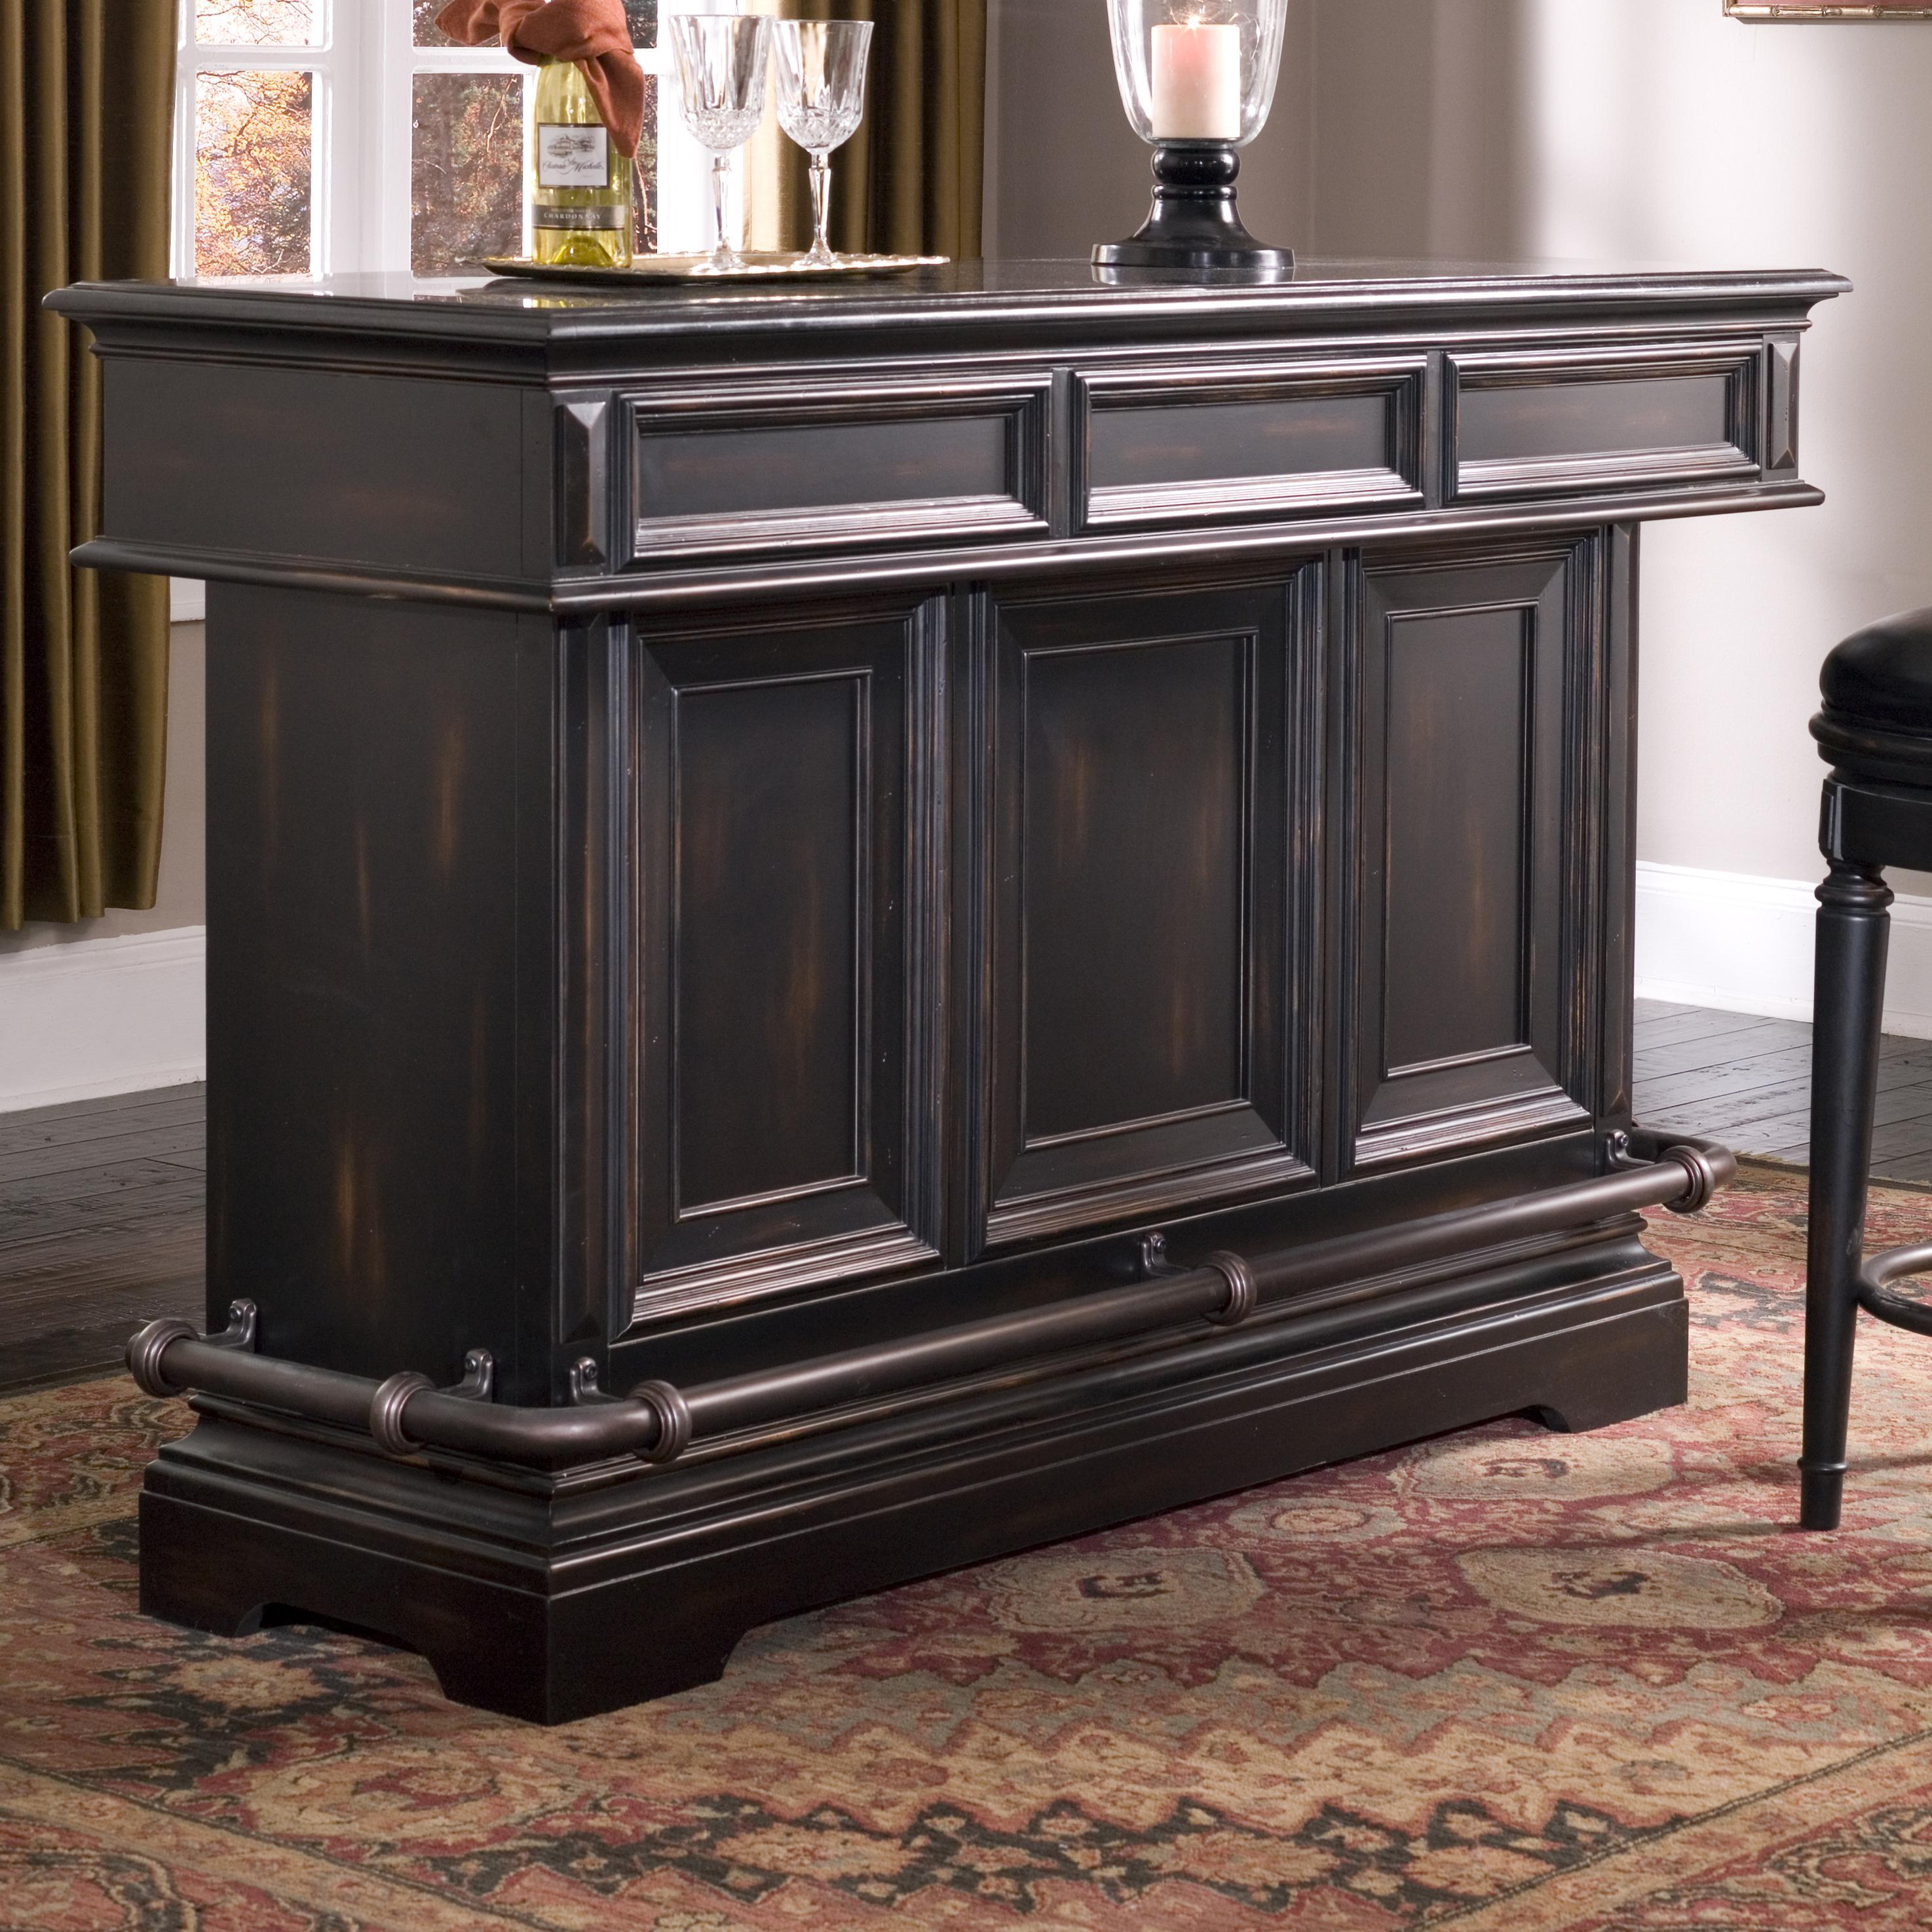 Pulaski Furniture Accents Bar - Item Number: 993499+993500T